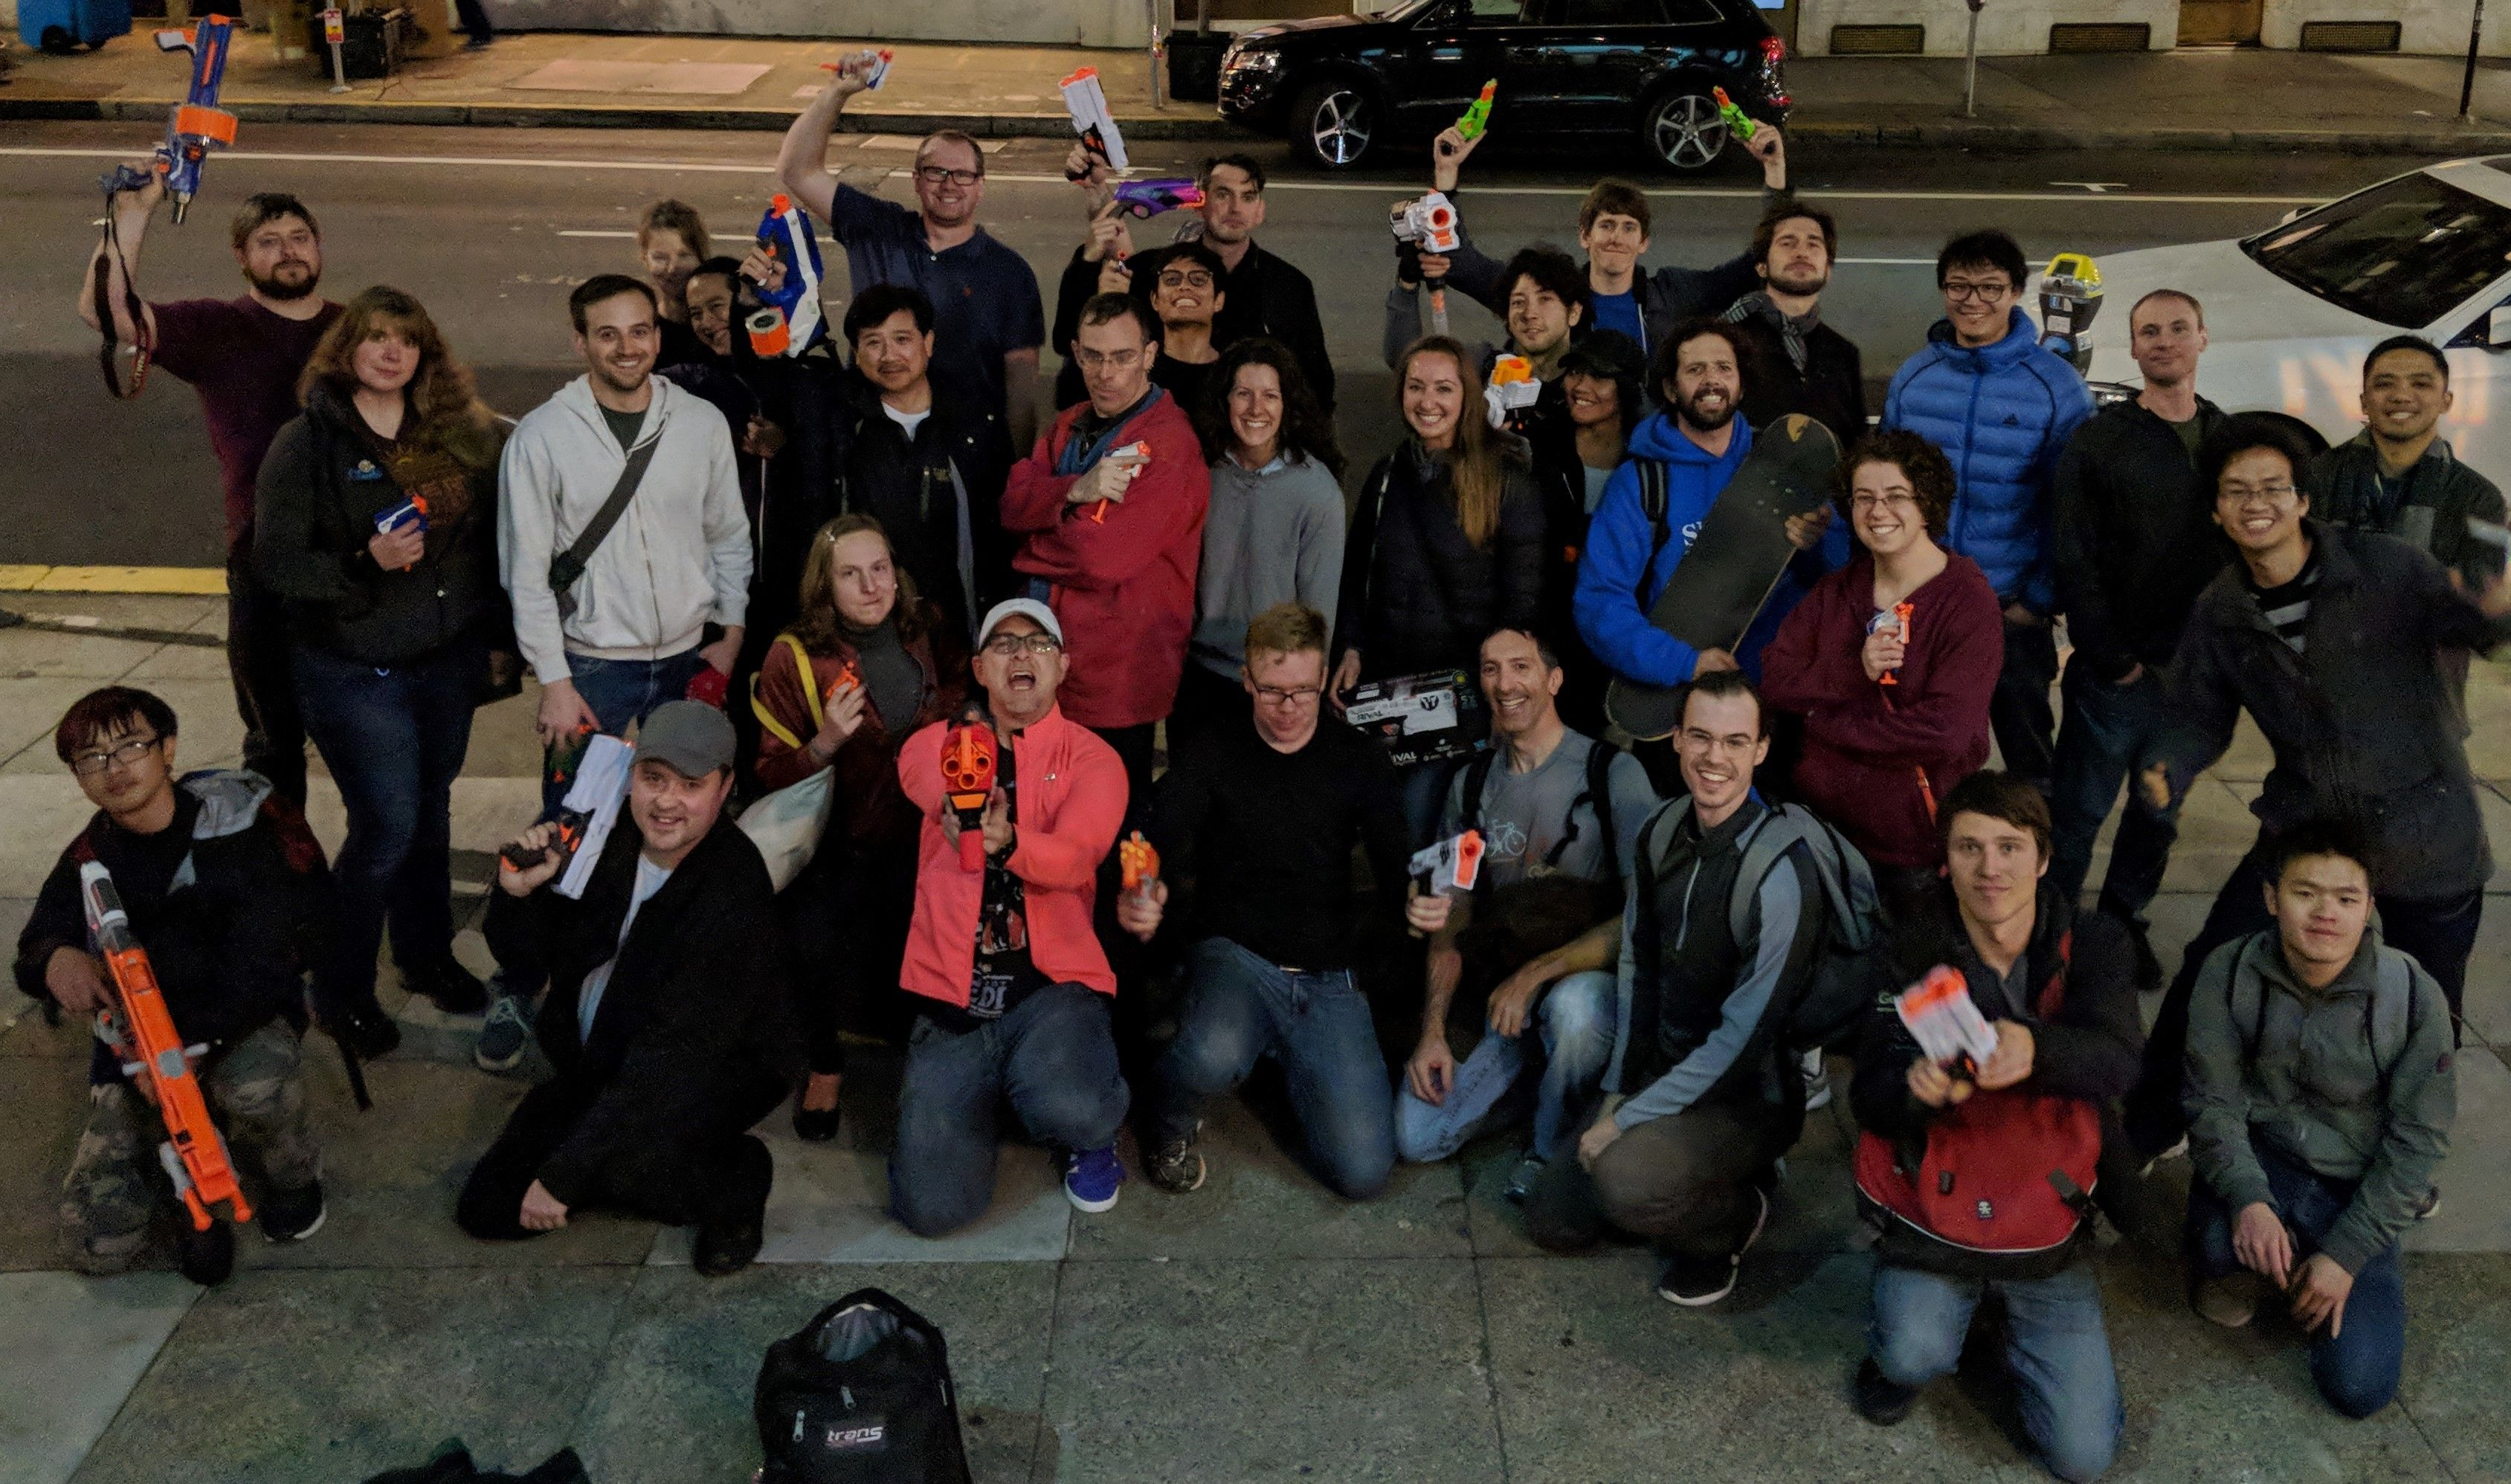 San Francisco Jericho meetup group